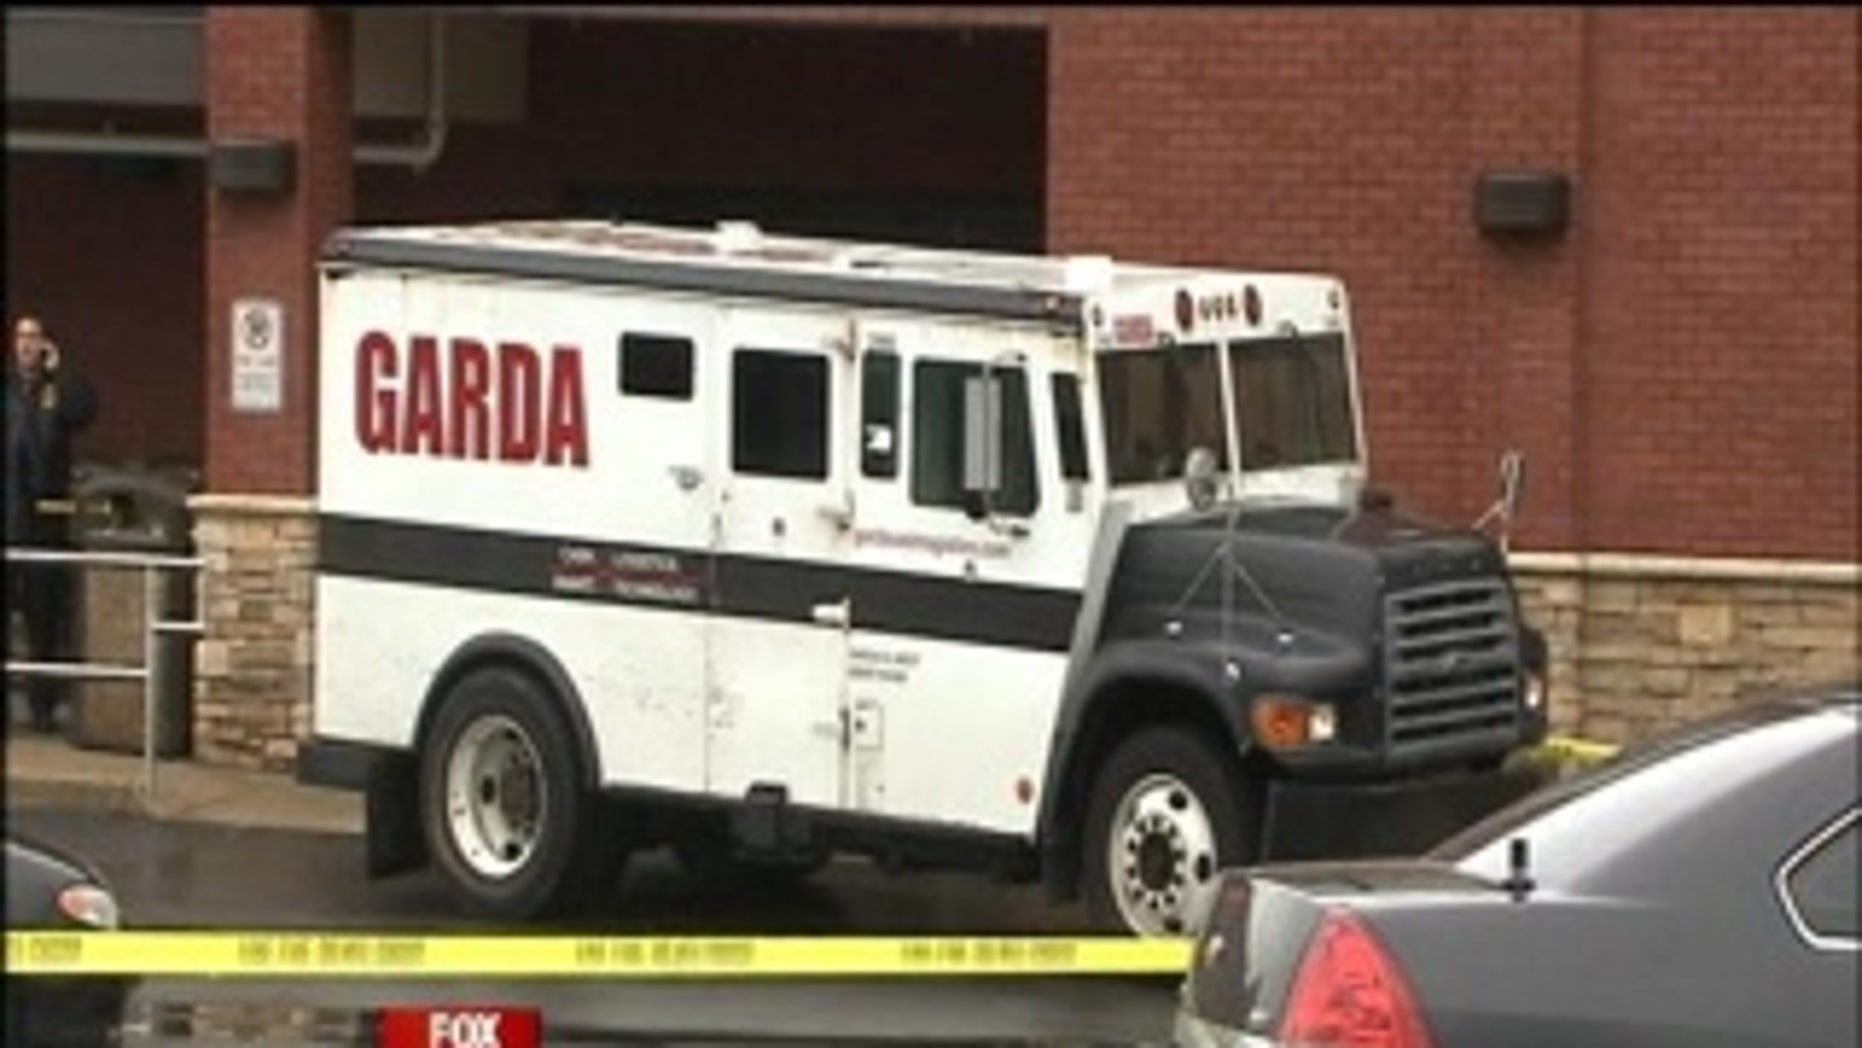 Authorities say an armored car worker who had just made a pickup at a Georgia grocery store was shot several times and robbed as he left the store.